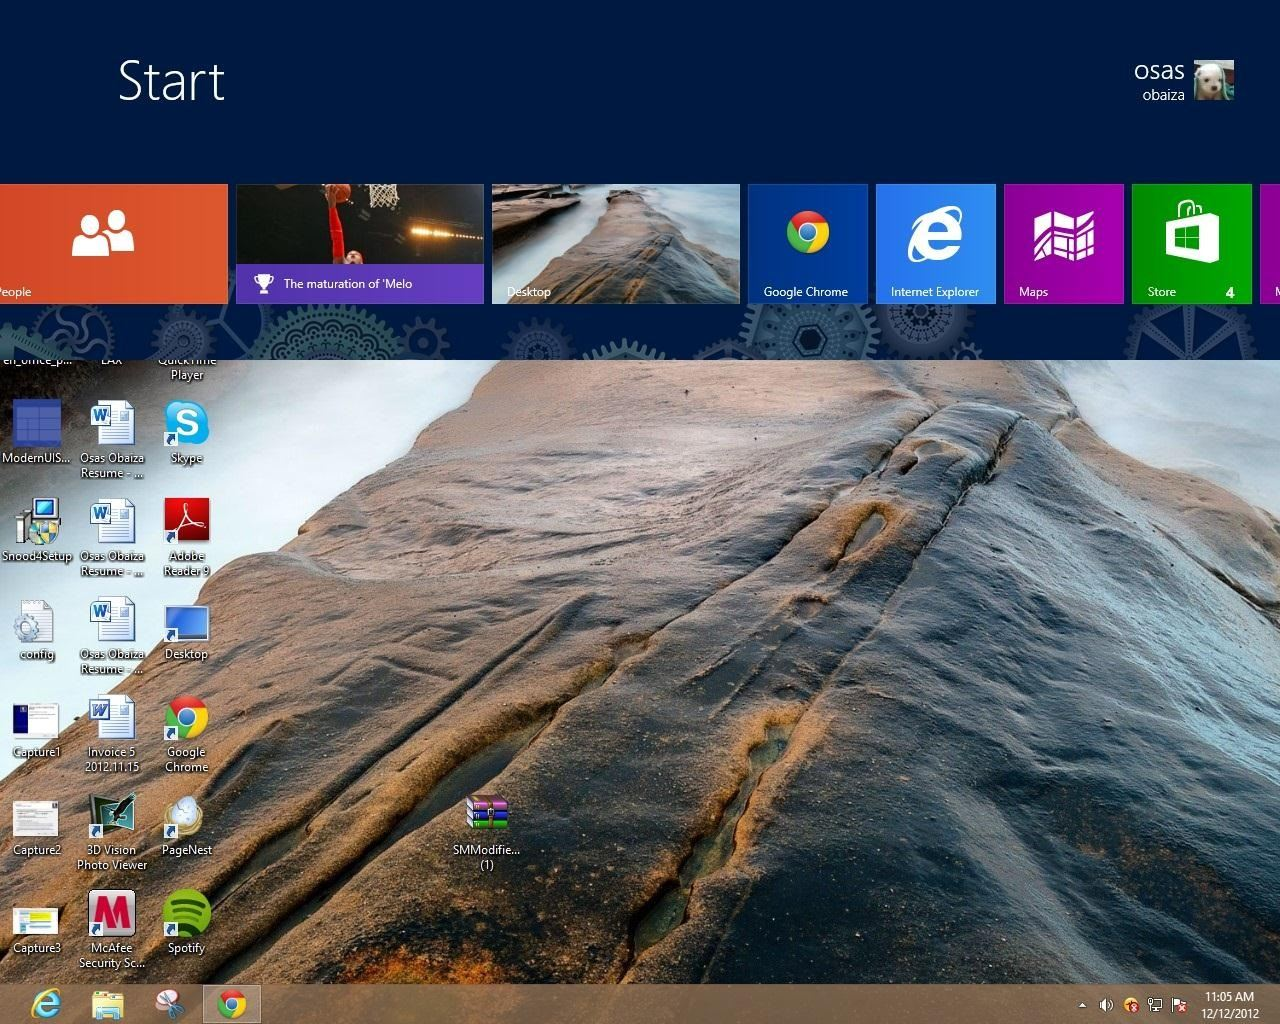 How to Get the Windows 8 Desktop and Start Screen (Or Taskbar and Start Screen) on the Same Display